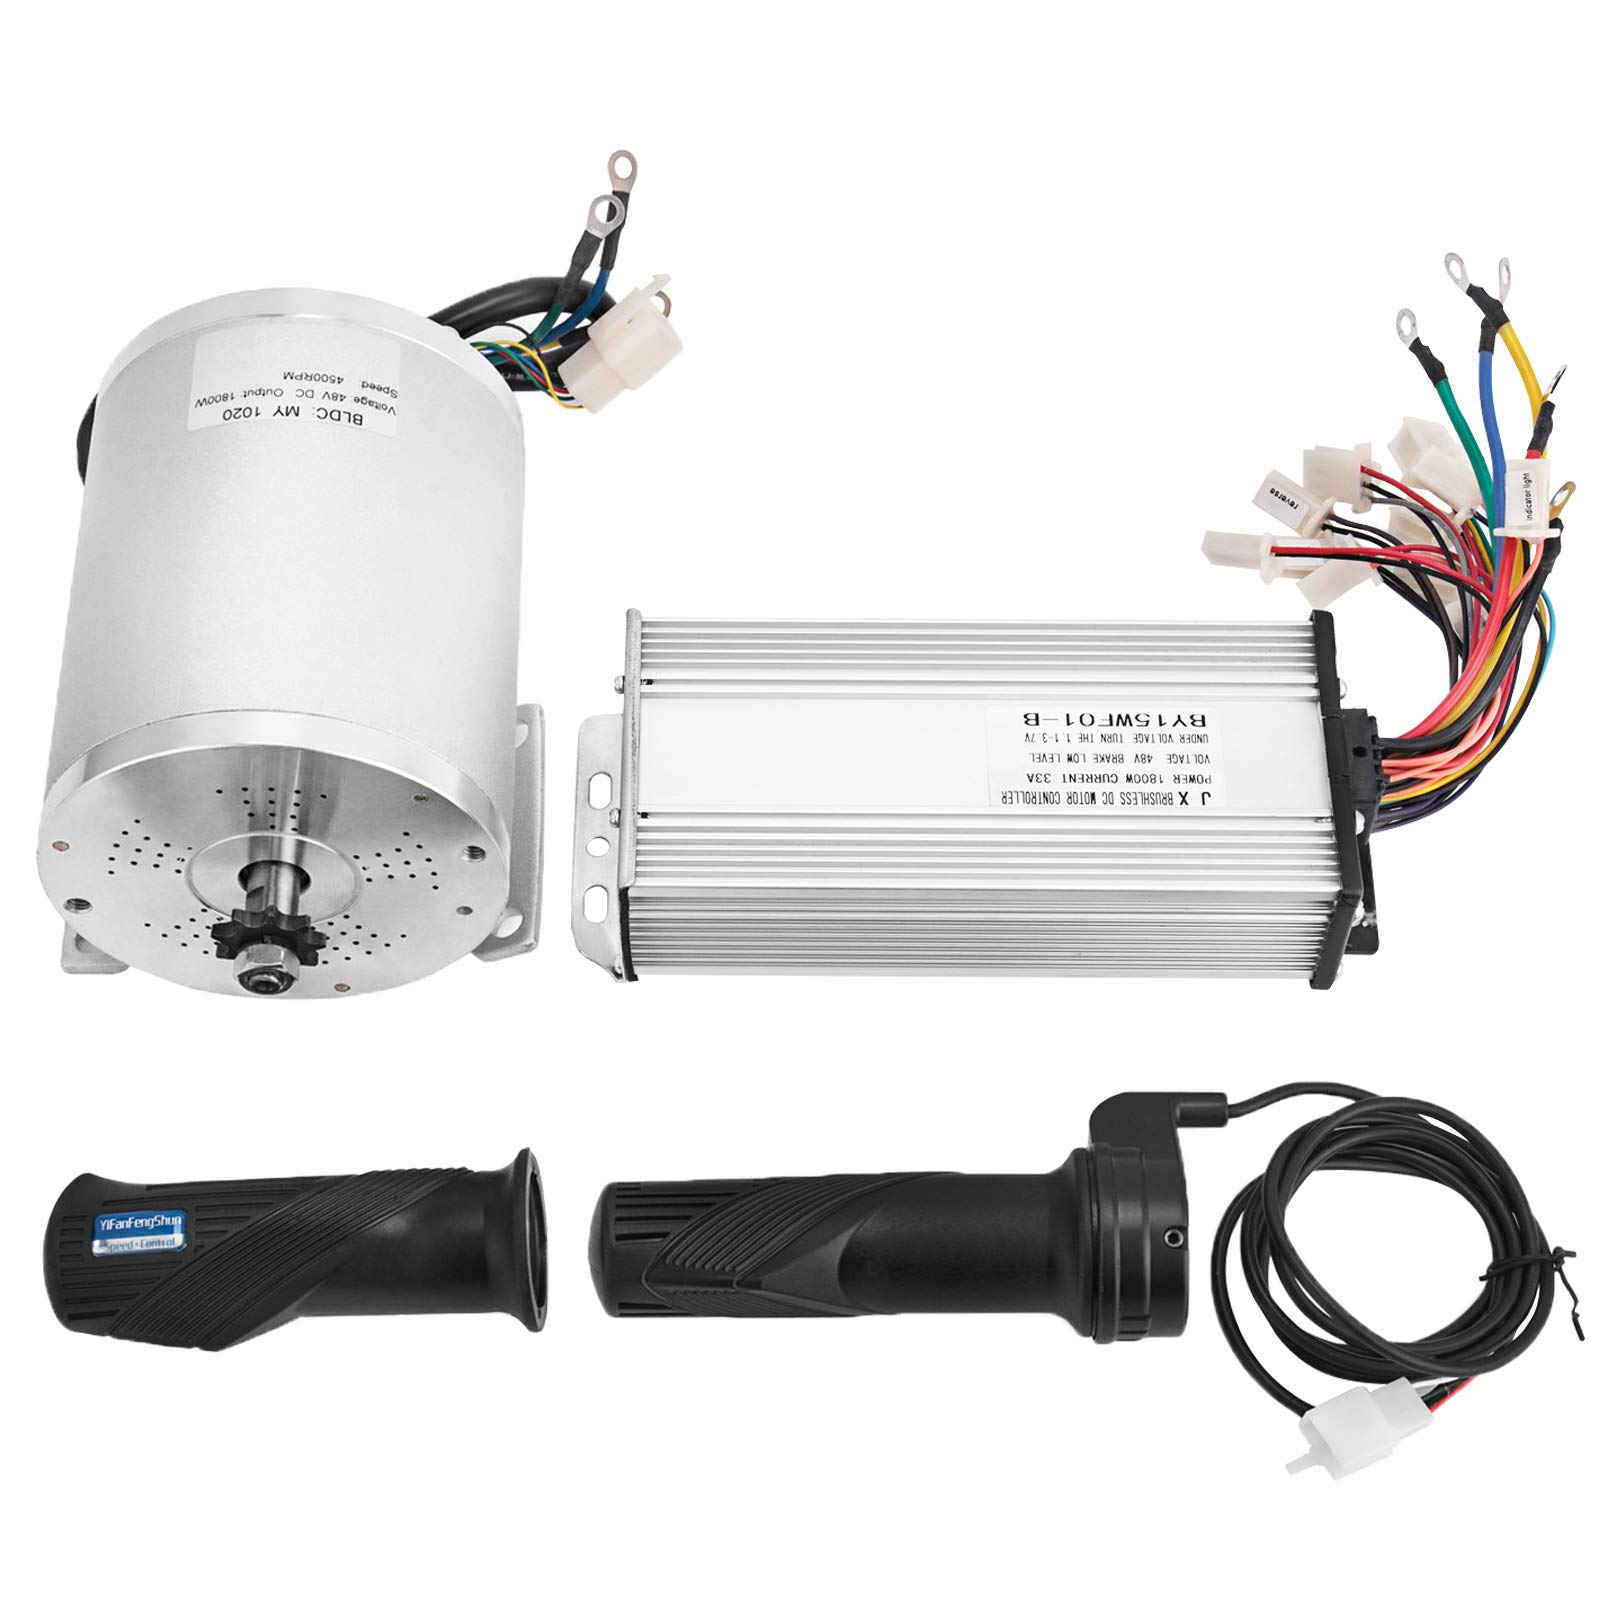 Mophorn 1800W Electric Brushless DC Motor Kit - 48V 5200rpm Brushless Motor with 32A Speed Controller and Throttle Grip Kit for Go Karts E-bike Electric Throttle Motorcycle Scooter